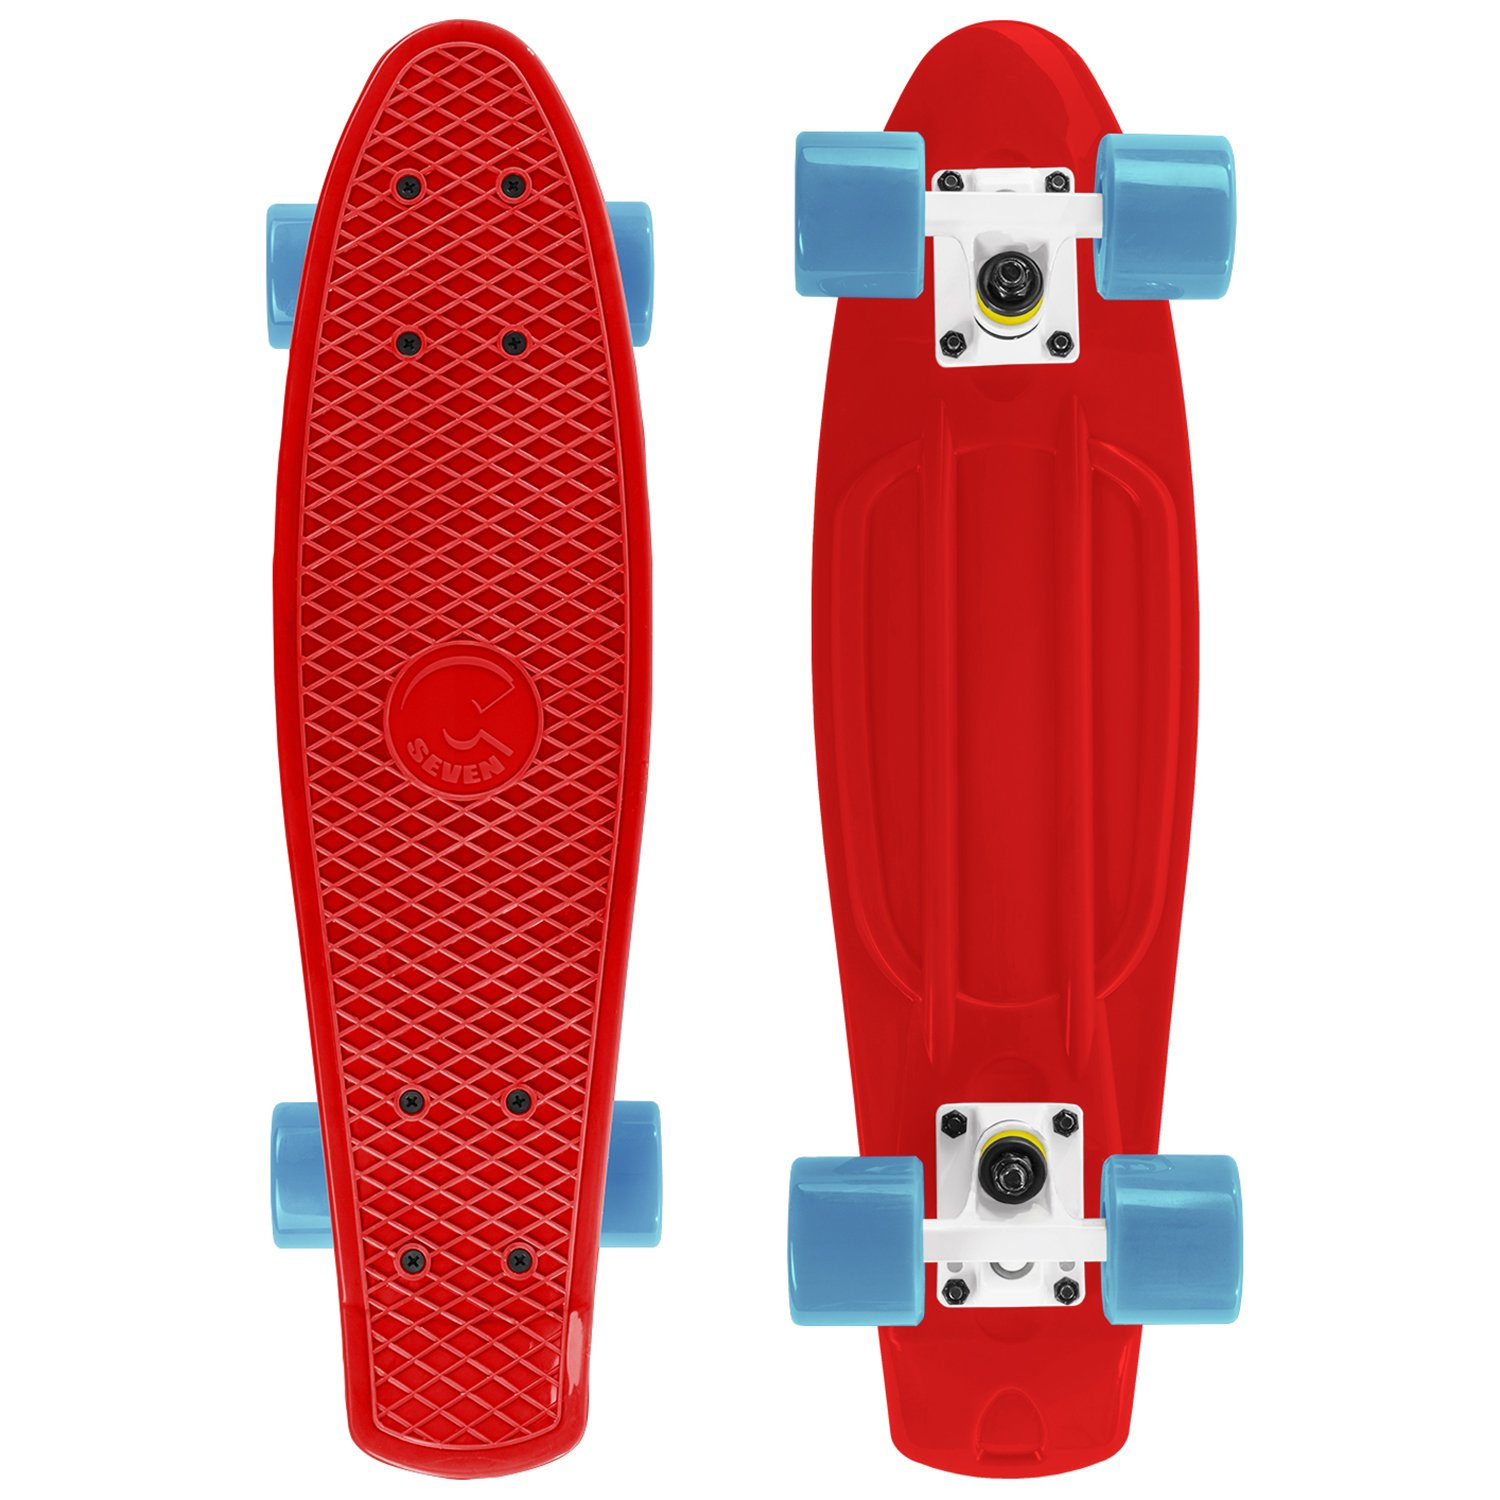 Cal 7 Style Skateboard Complete 22 Inch Standard Cruiser (Red/White/Aqua) by Cal 7